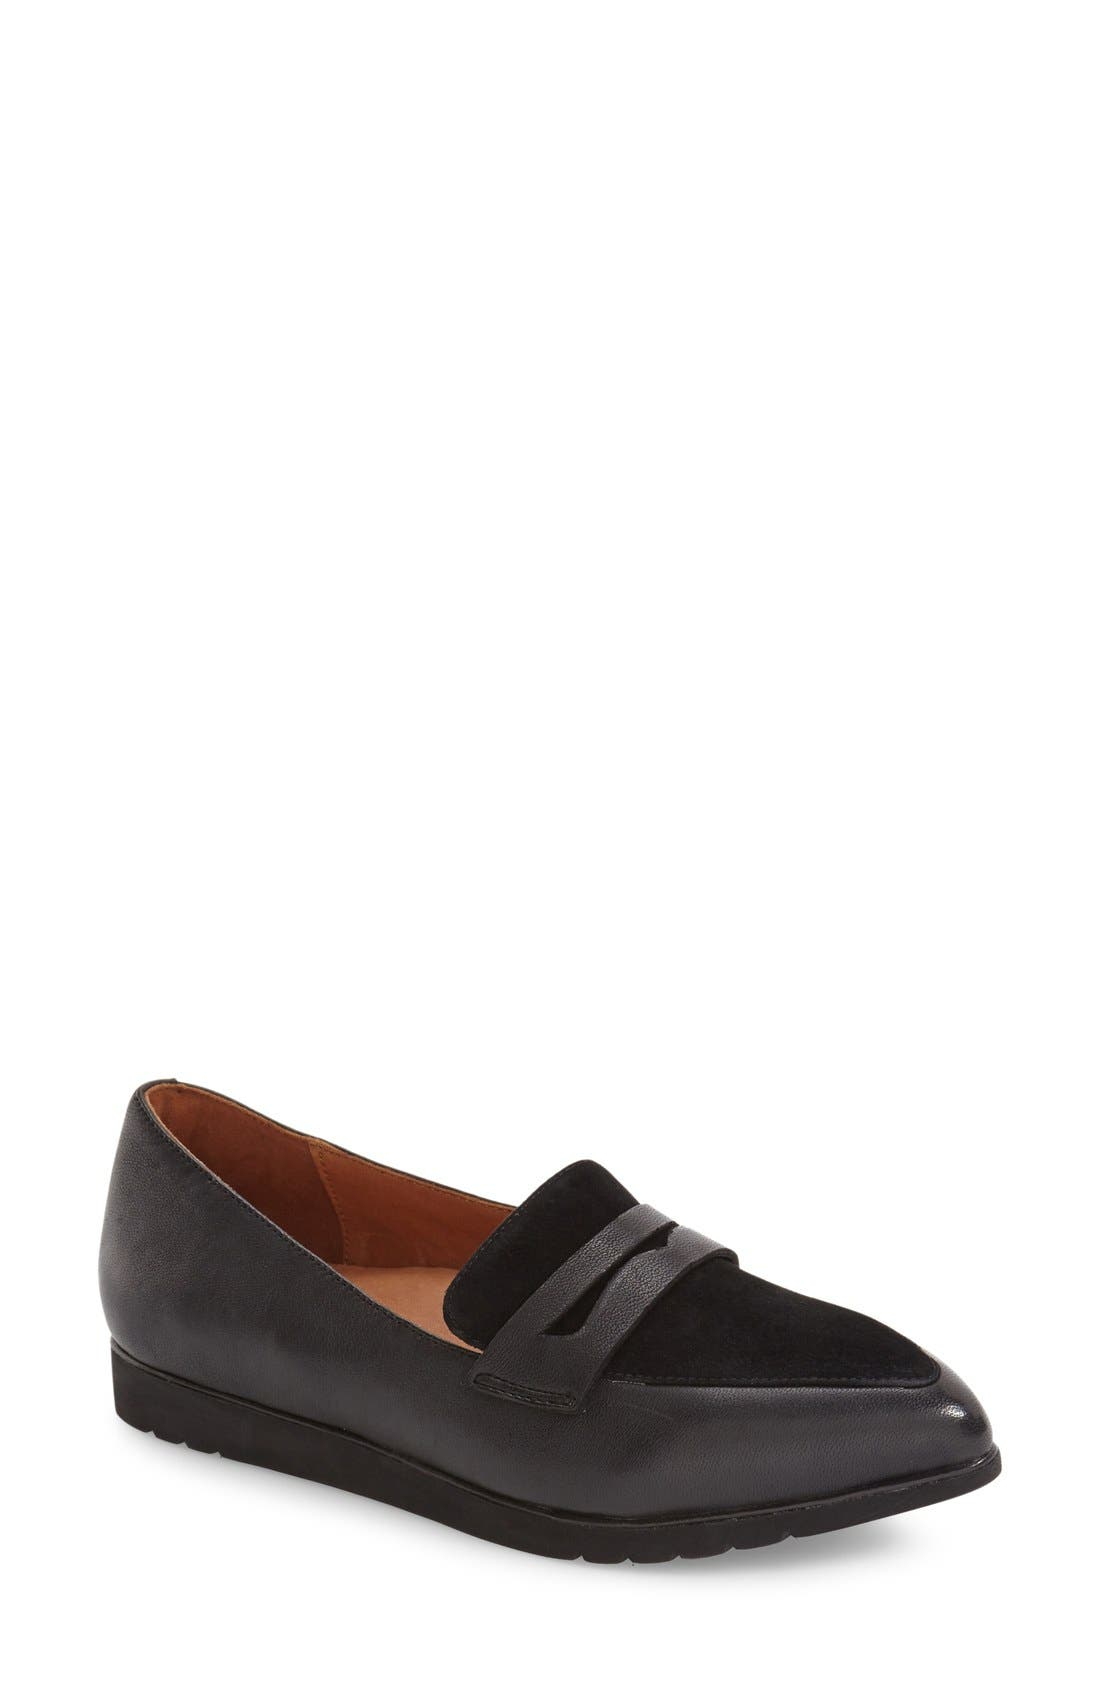 Alternate Image 1 Selected - L'Amour des Pieds 'Miamore' Pointy Toe Loafer (Women)